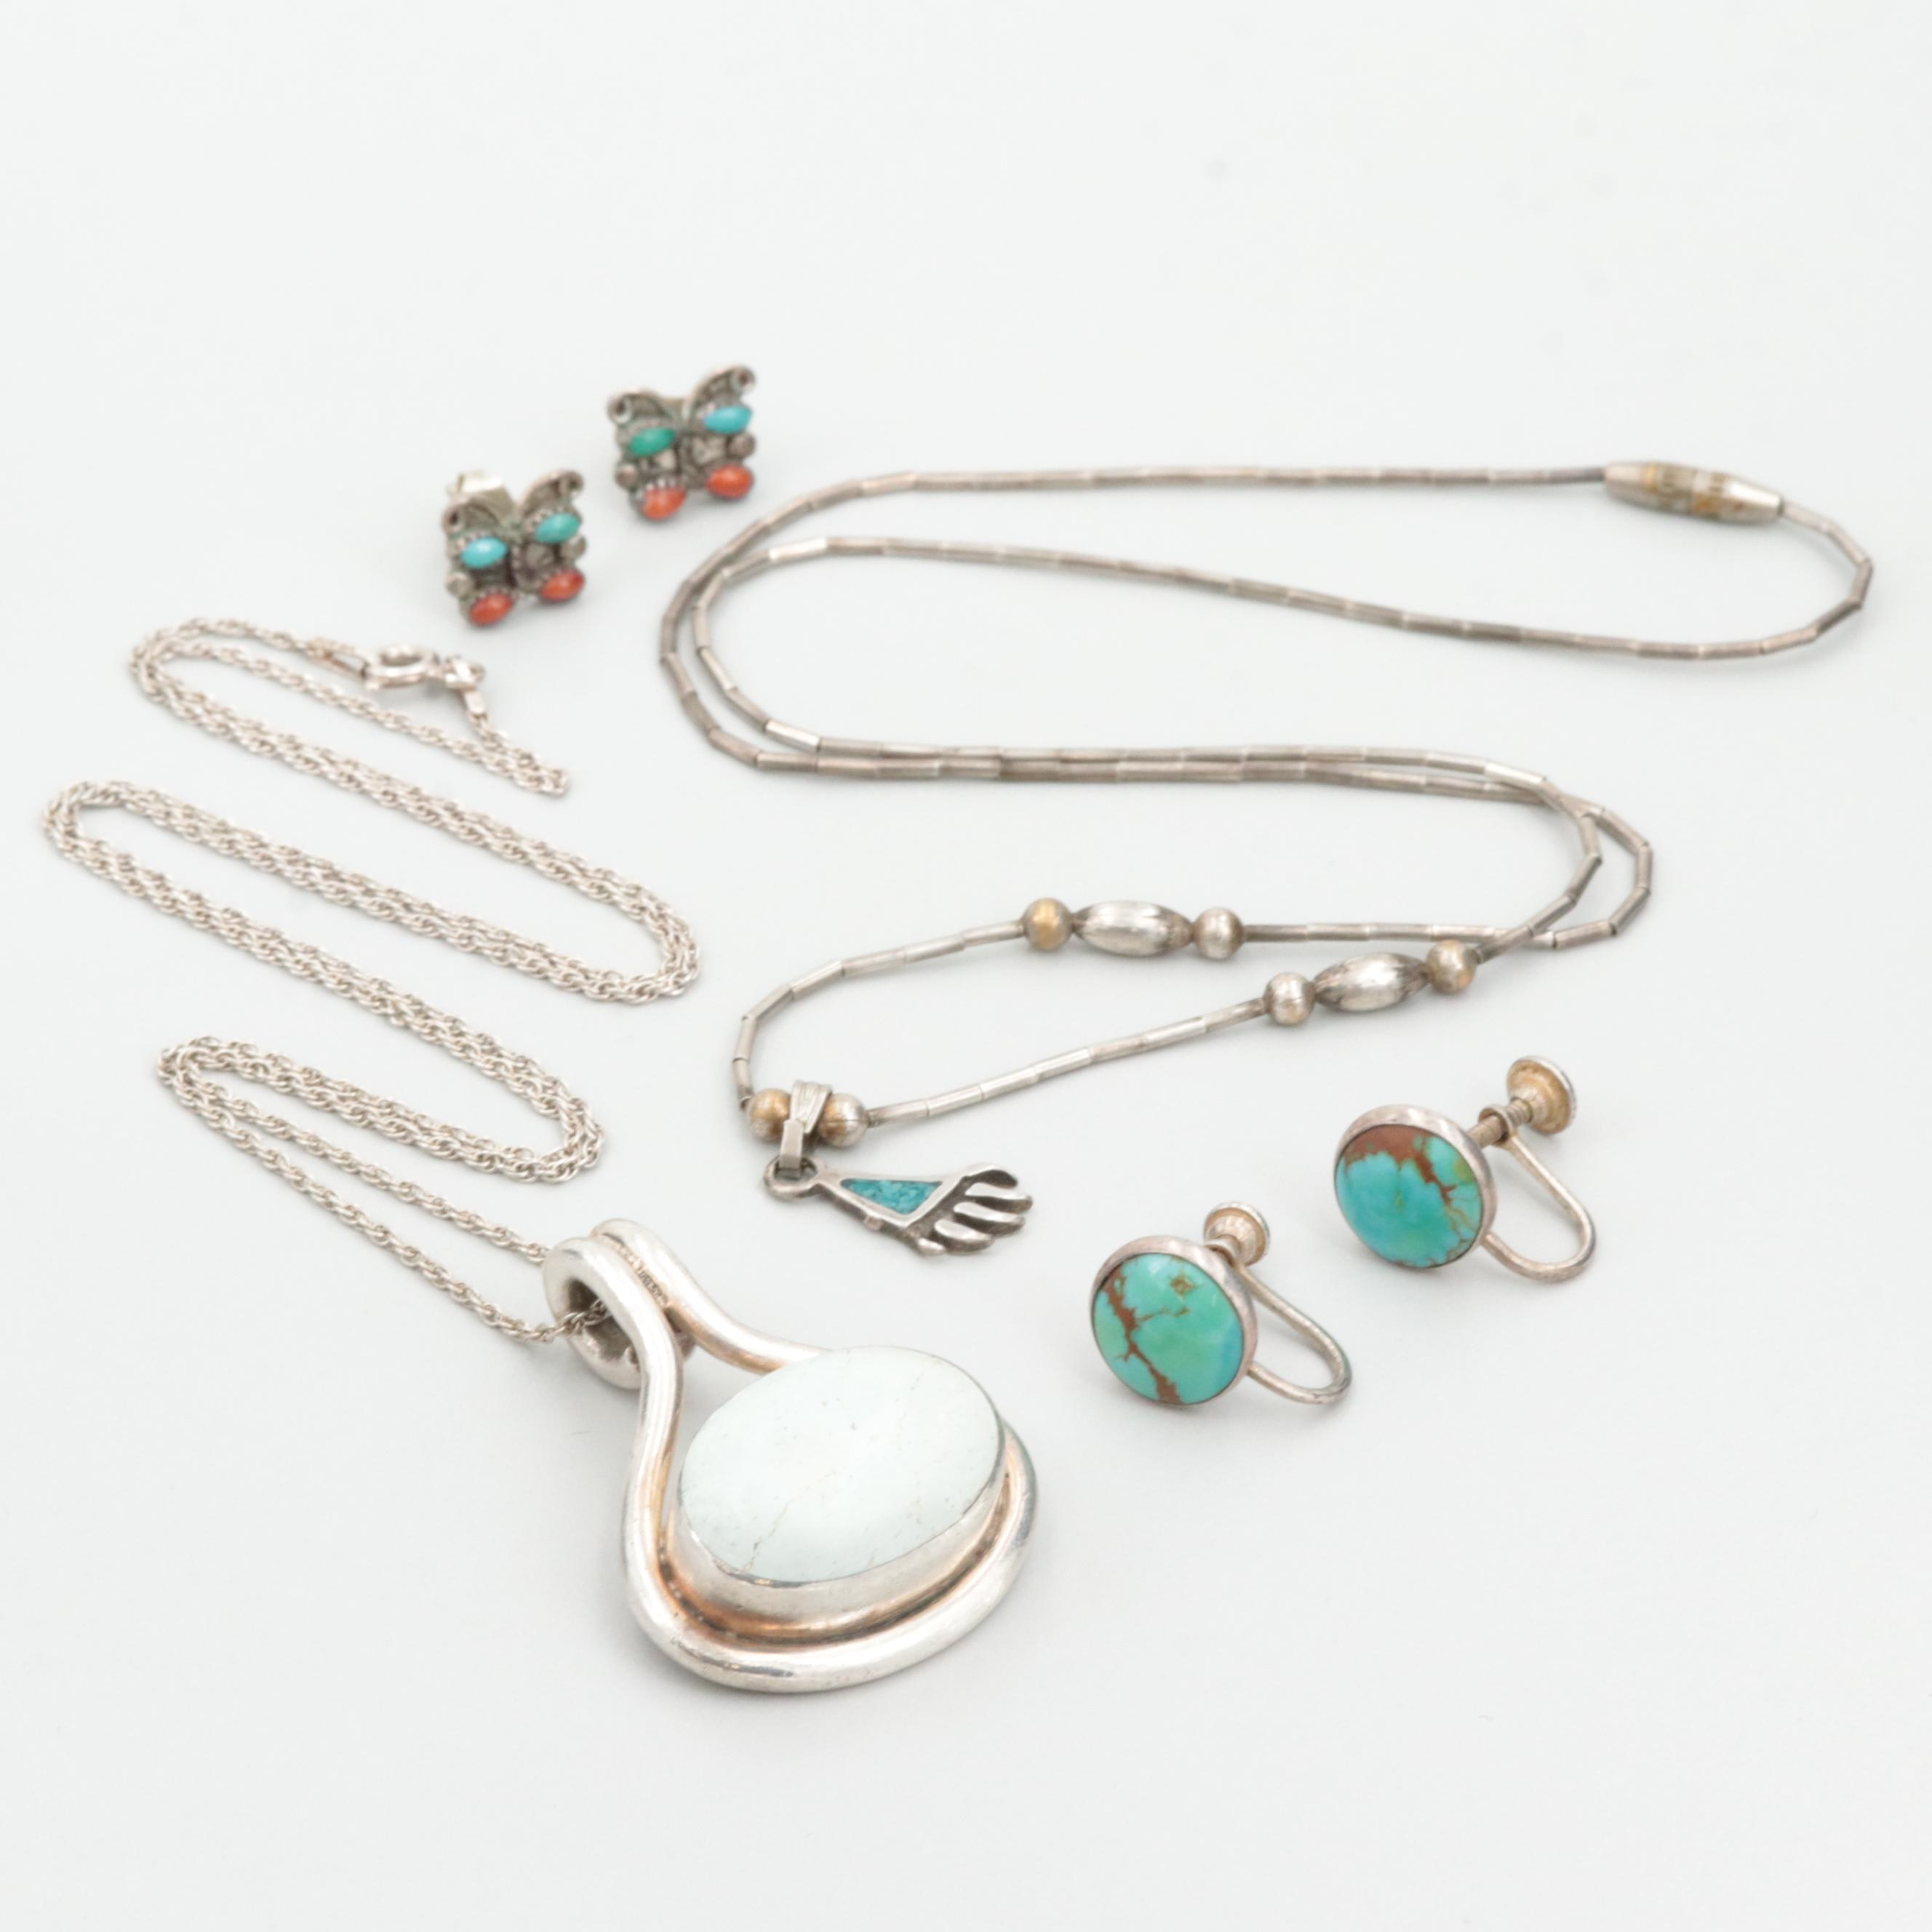 Southwestern Sterling Silver Assortment Including Turquoise and Coral Accents